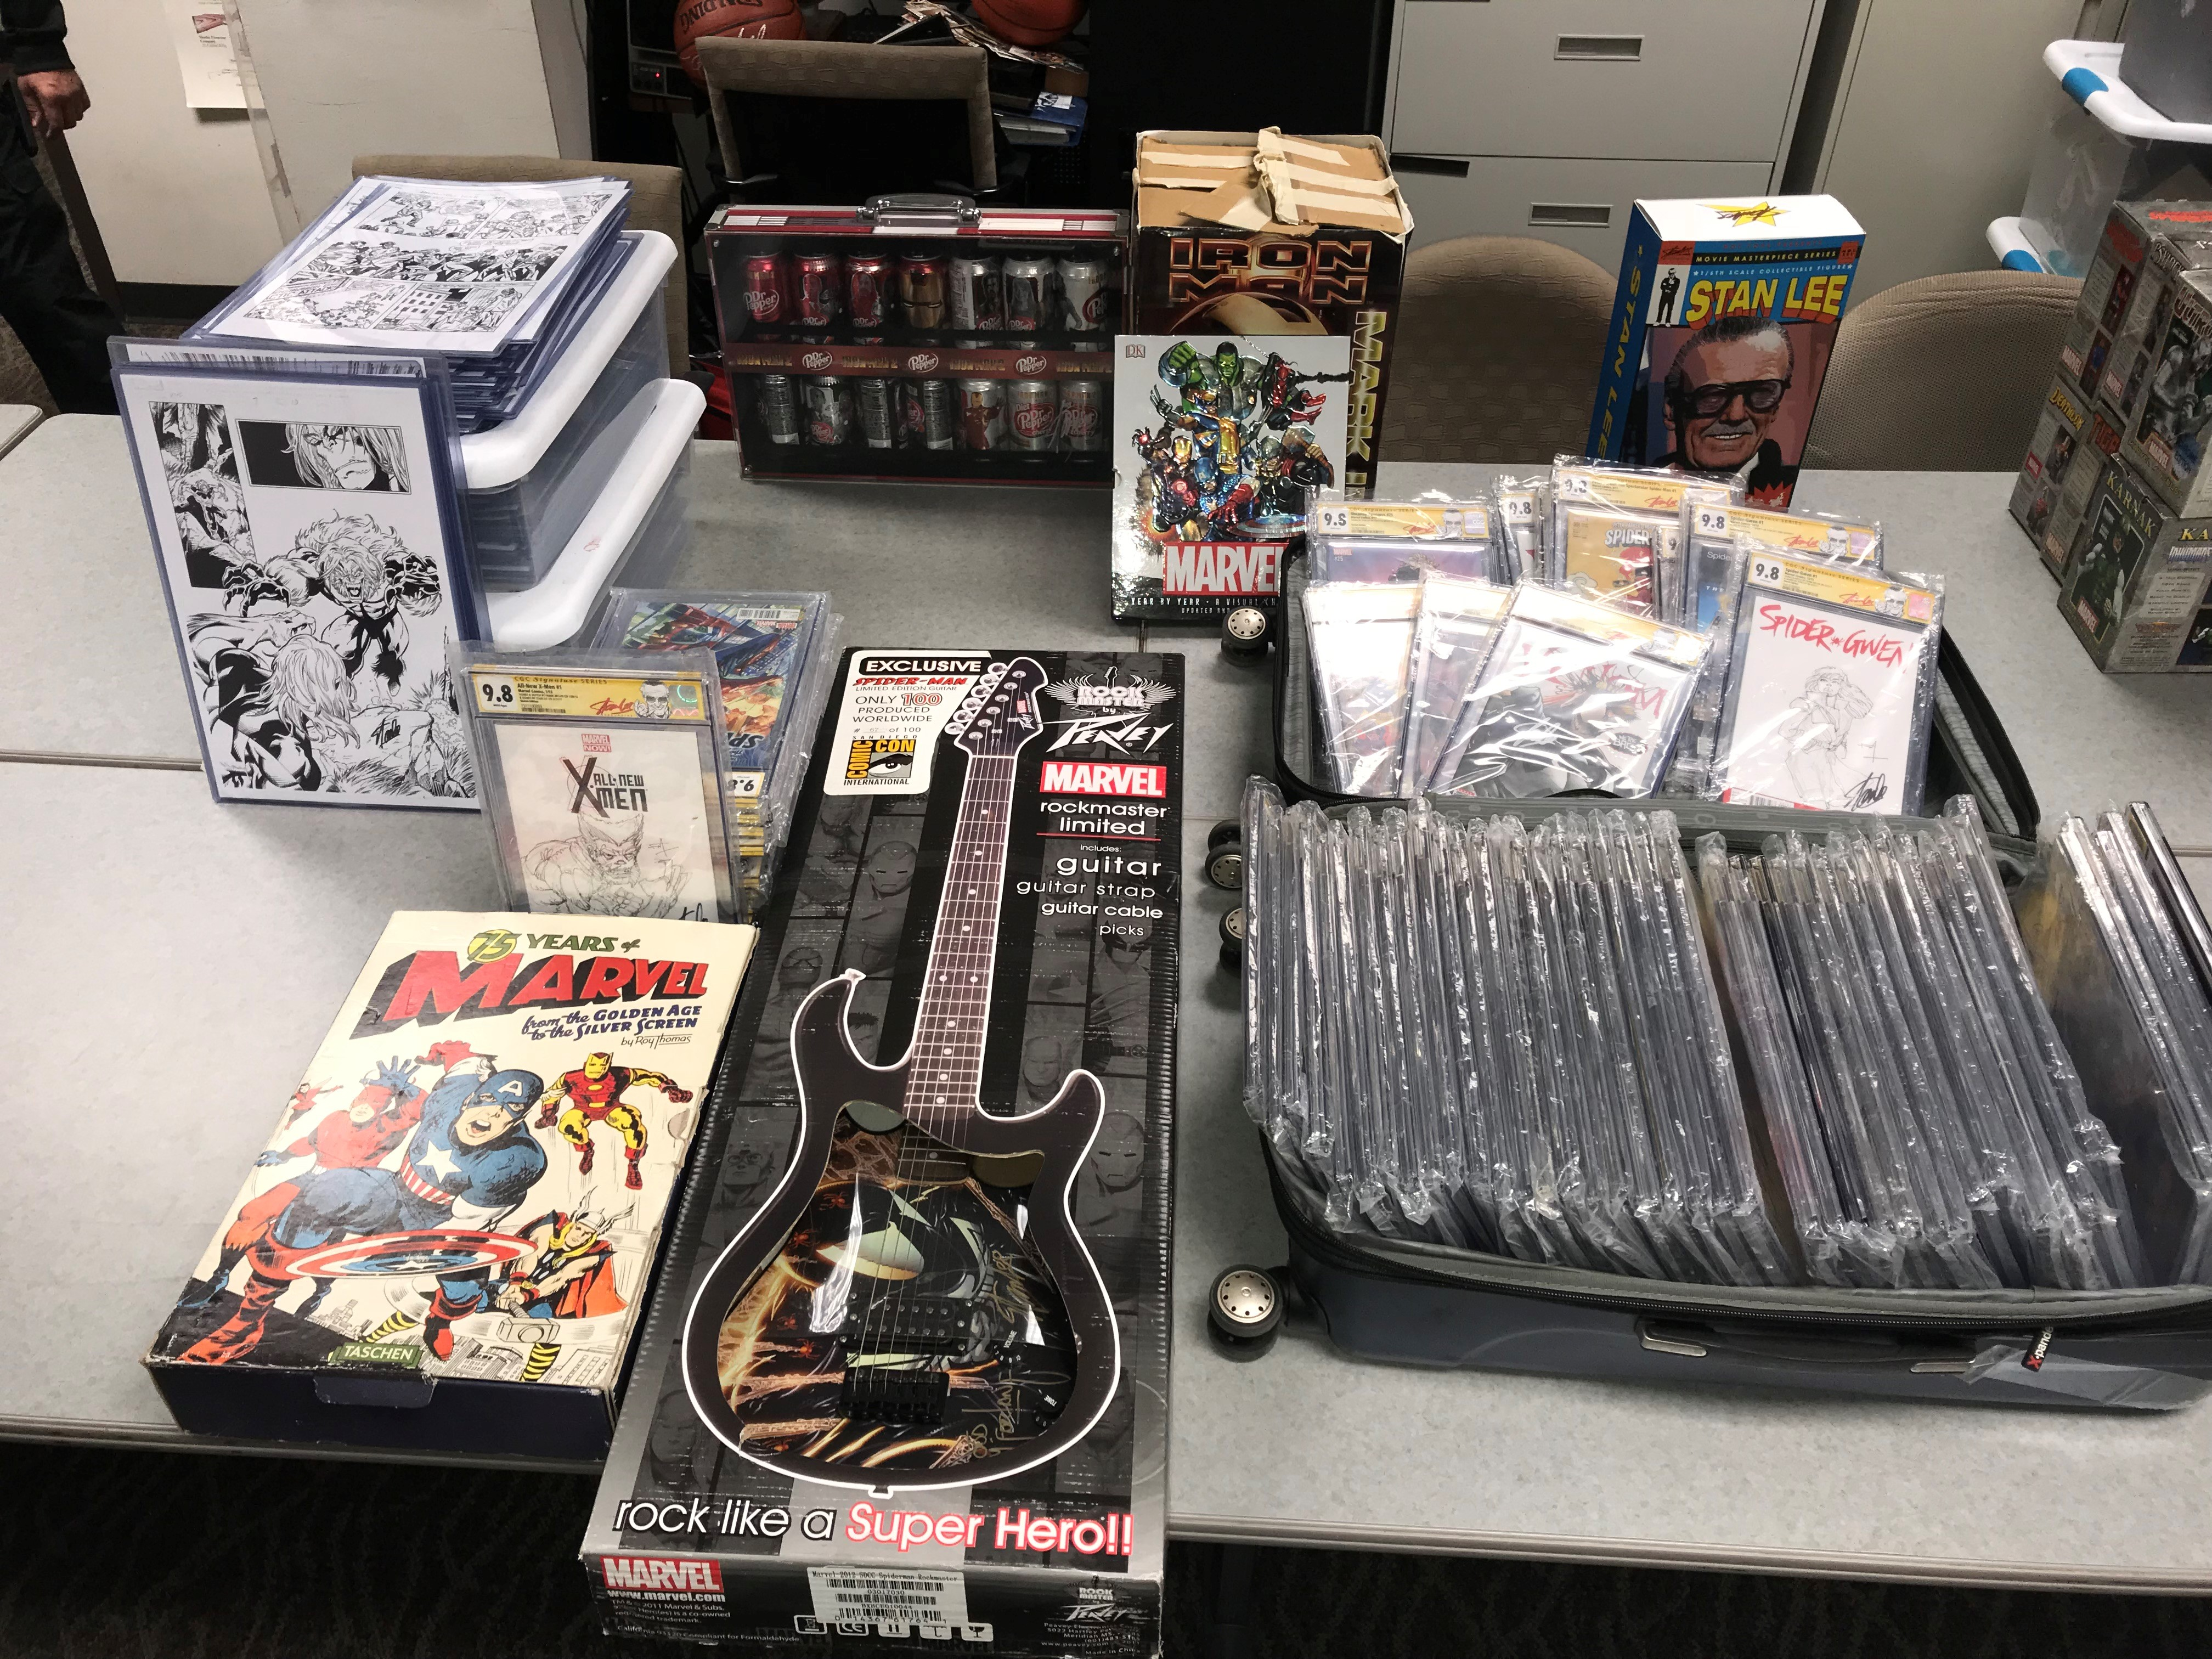 Marvel collectable items allegedly stolen from a storage unit are shown in a photo released by the Rancho Cucamonga Police Department on March 12, 2018.